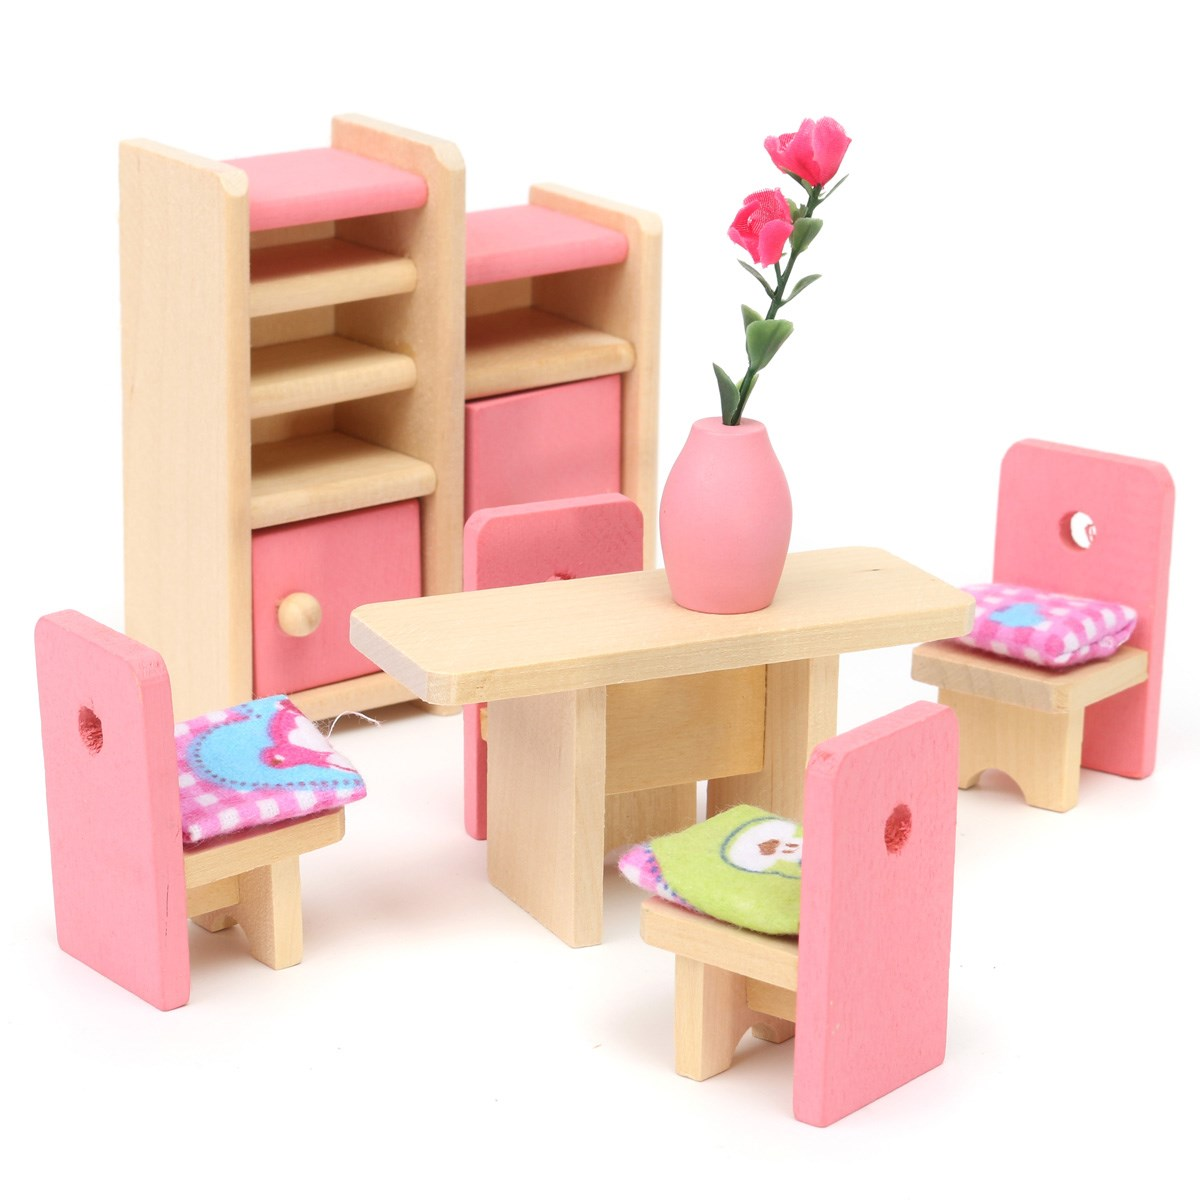 Sofa Infantil Toys R Us Wooden Delicate Dollhouse Furniture Toys Miniature For Kids